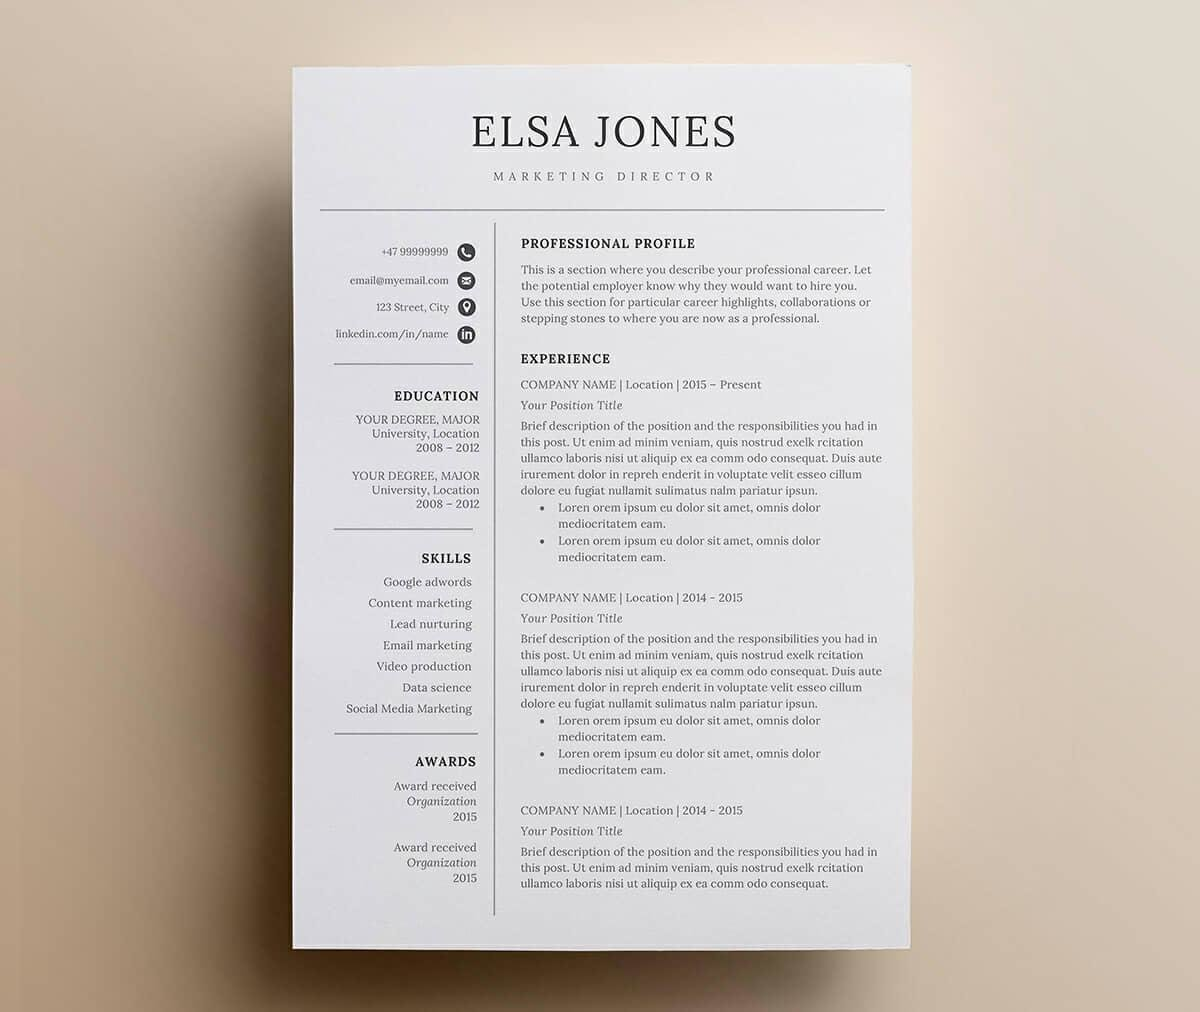 Basic Resume Templates 15 Examples To Download & Use Now